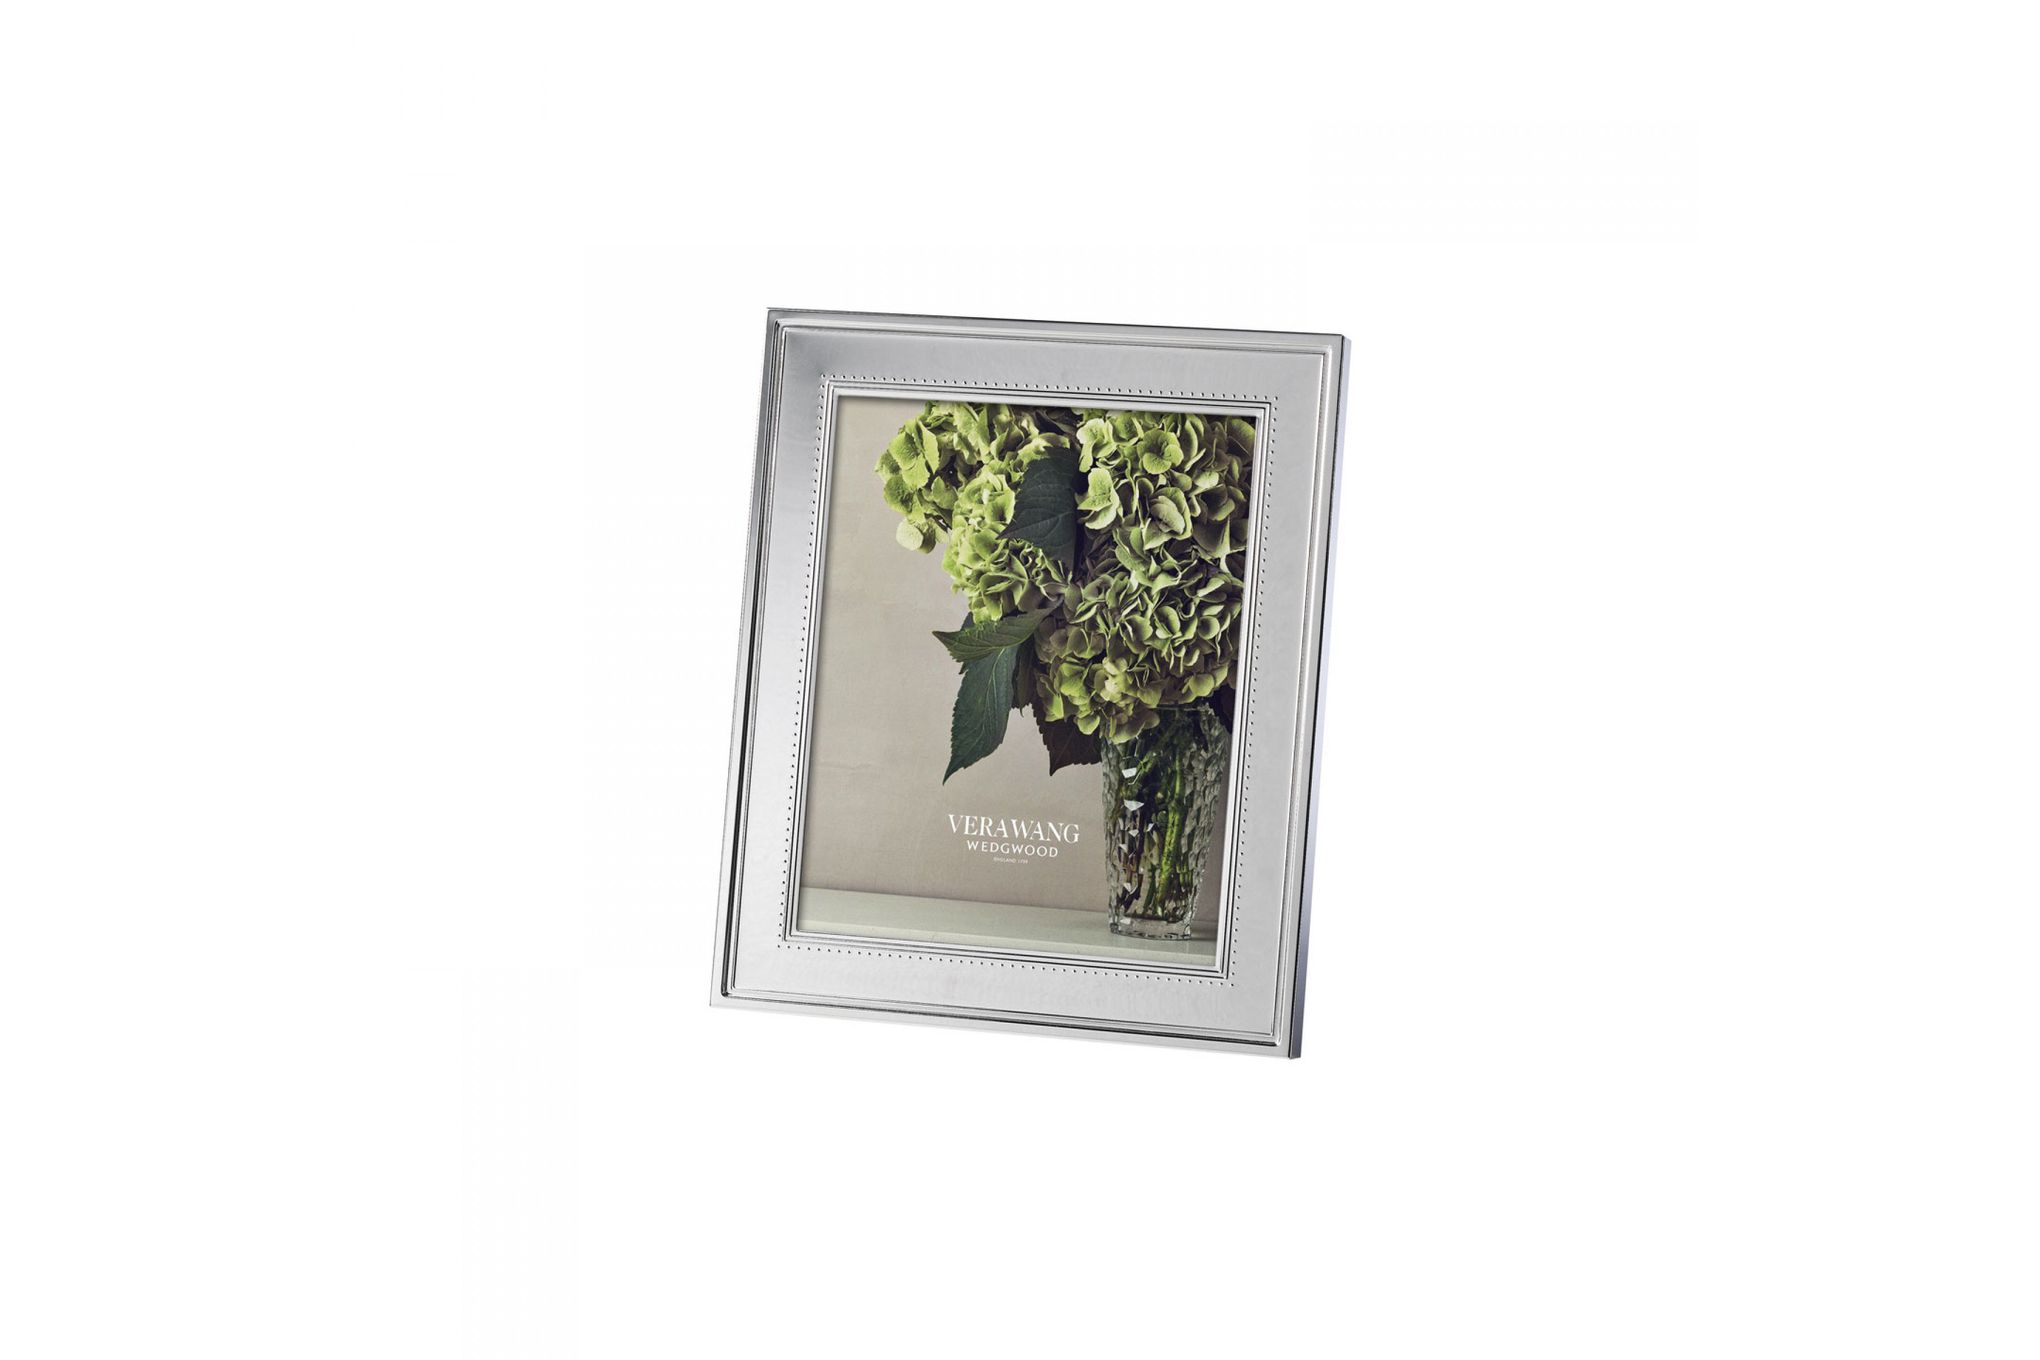 """Vera Wang for Wedgwood Gifts & Accessories Photo Frame 8 x 10"""" thumb 1"""